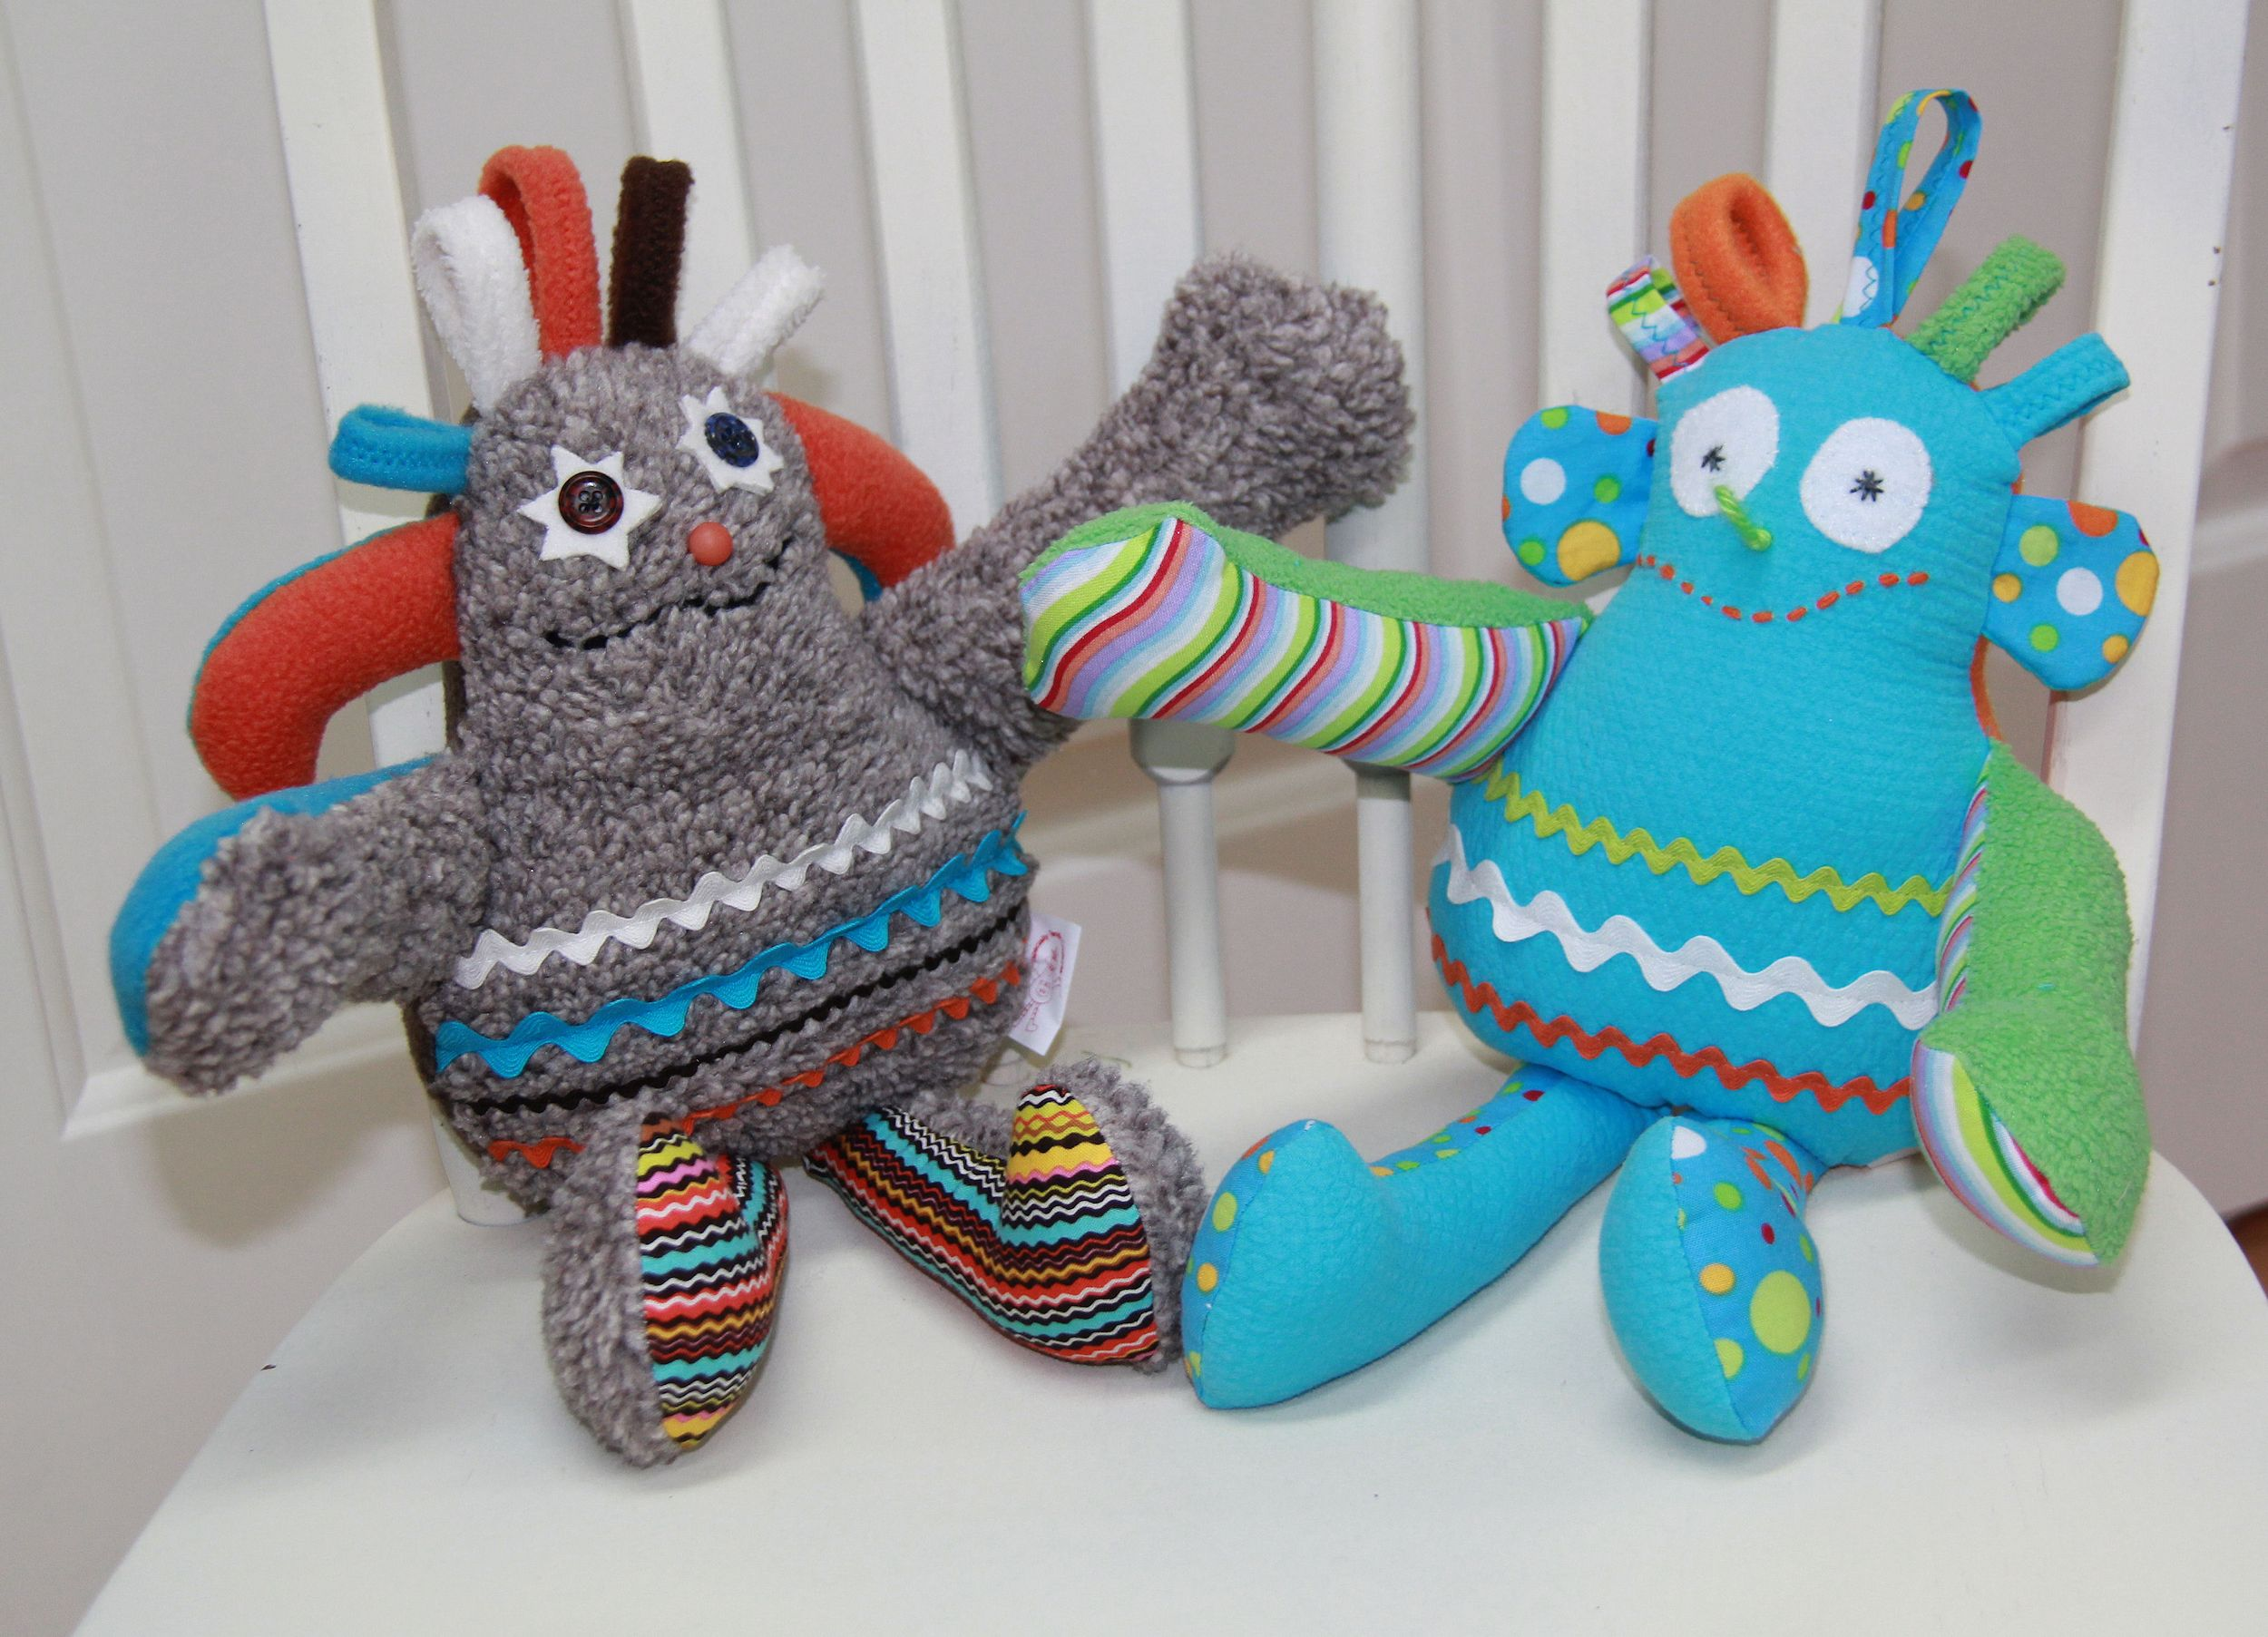 Especially Terrific Creature Toy Sewing Pattern